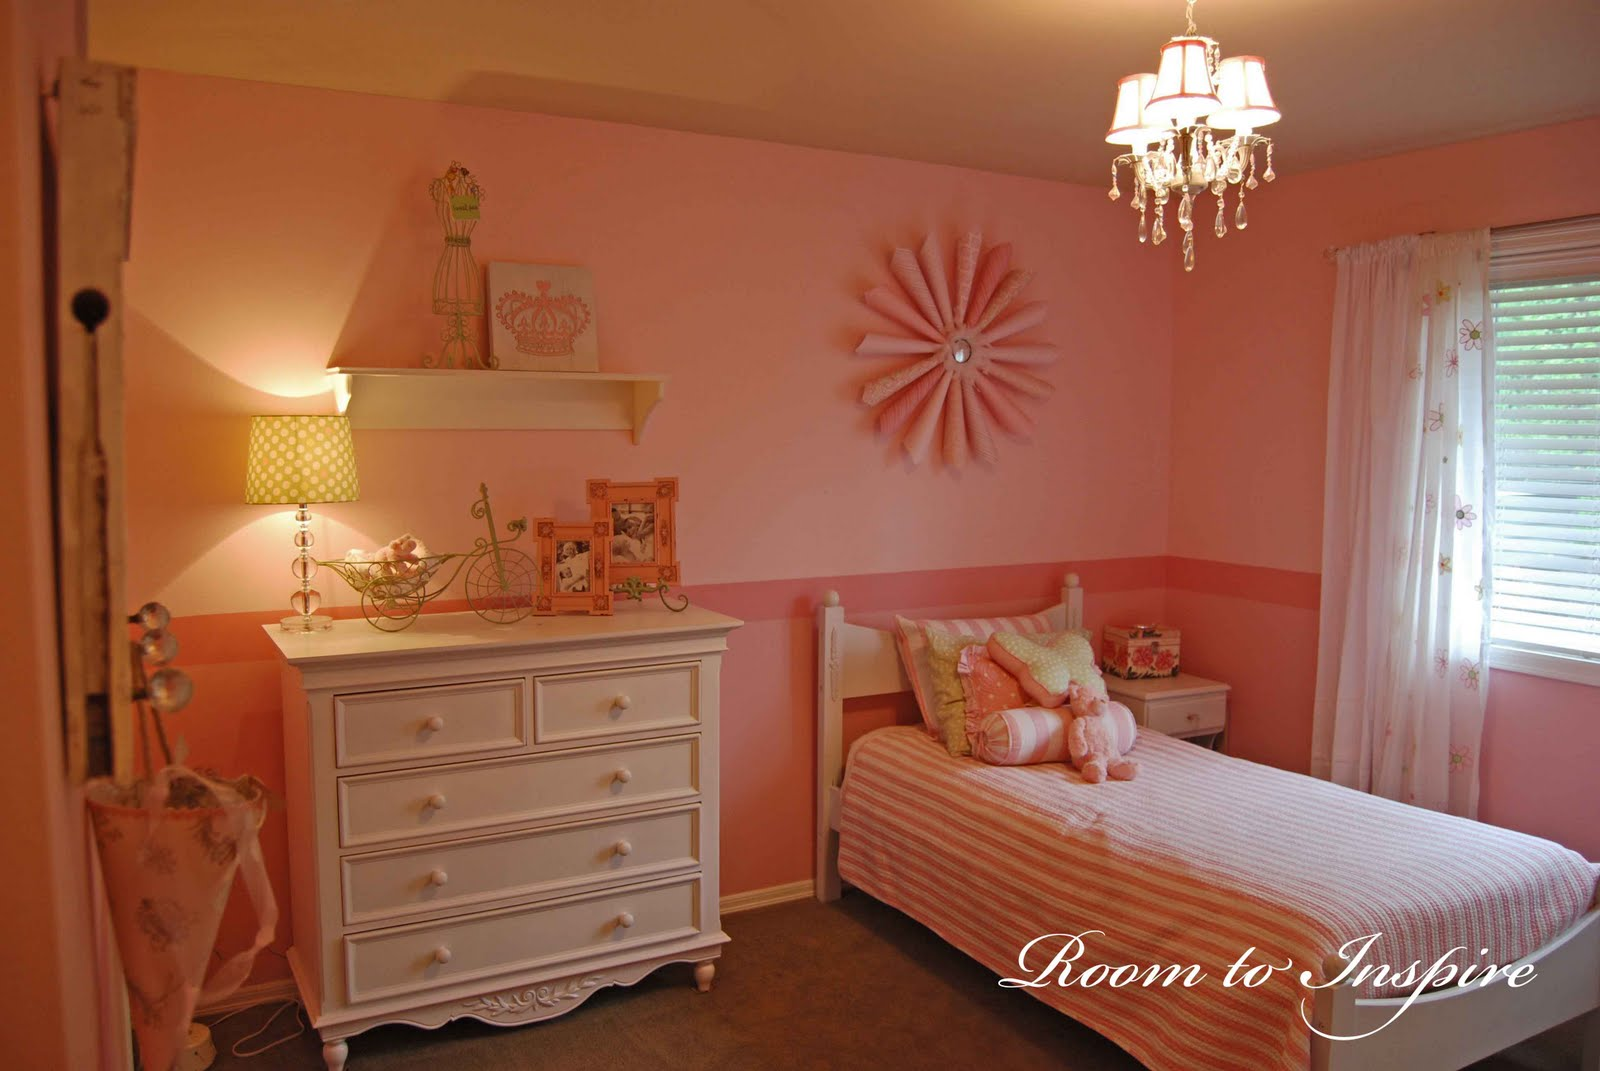 14 Year Old Room Ideas Decorating A 9 Year Old Girls Bedroom